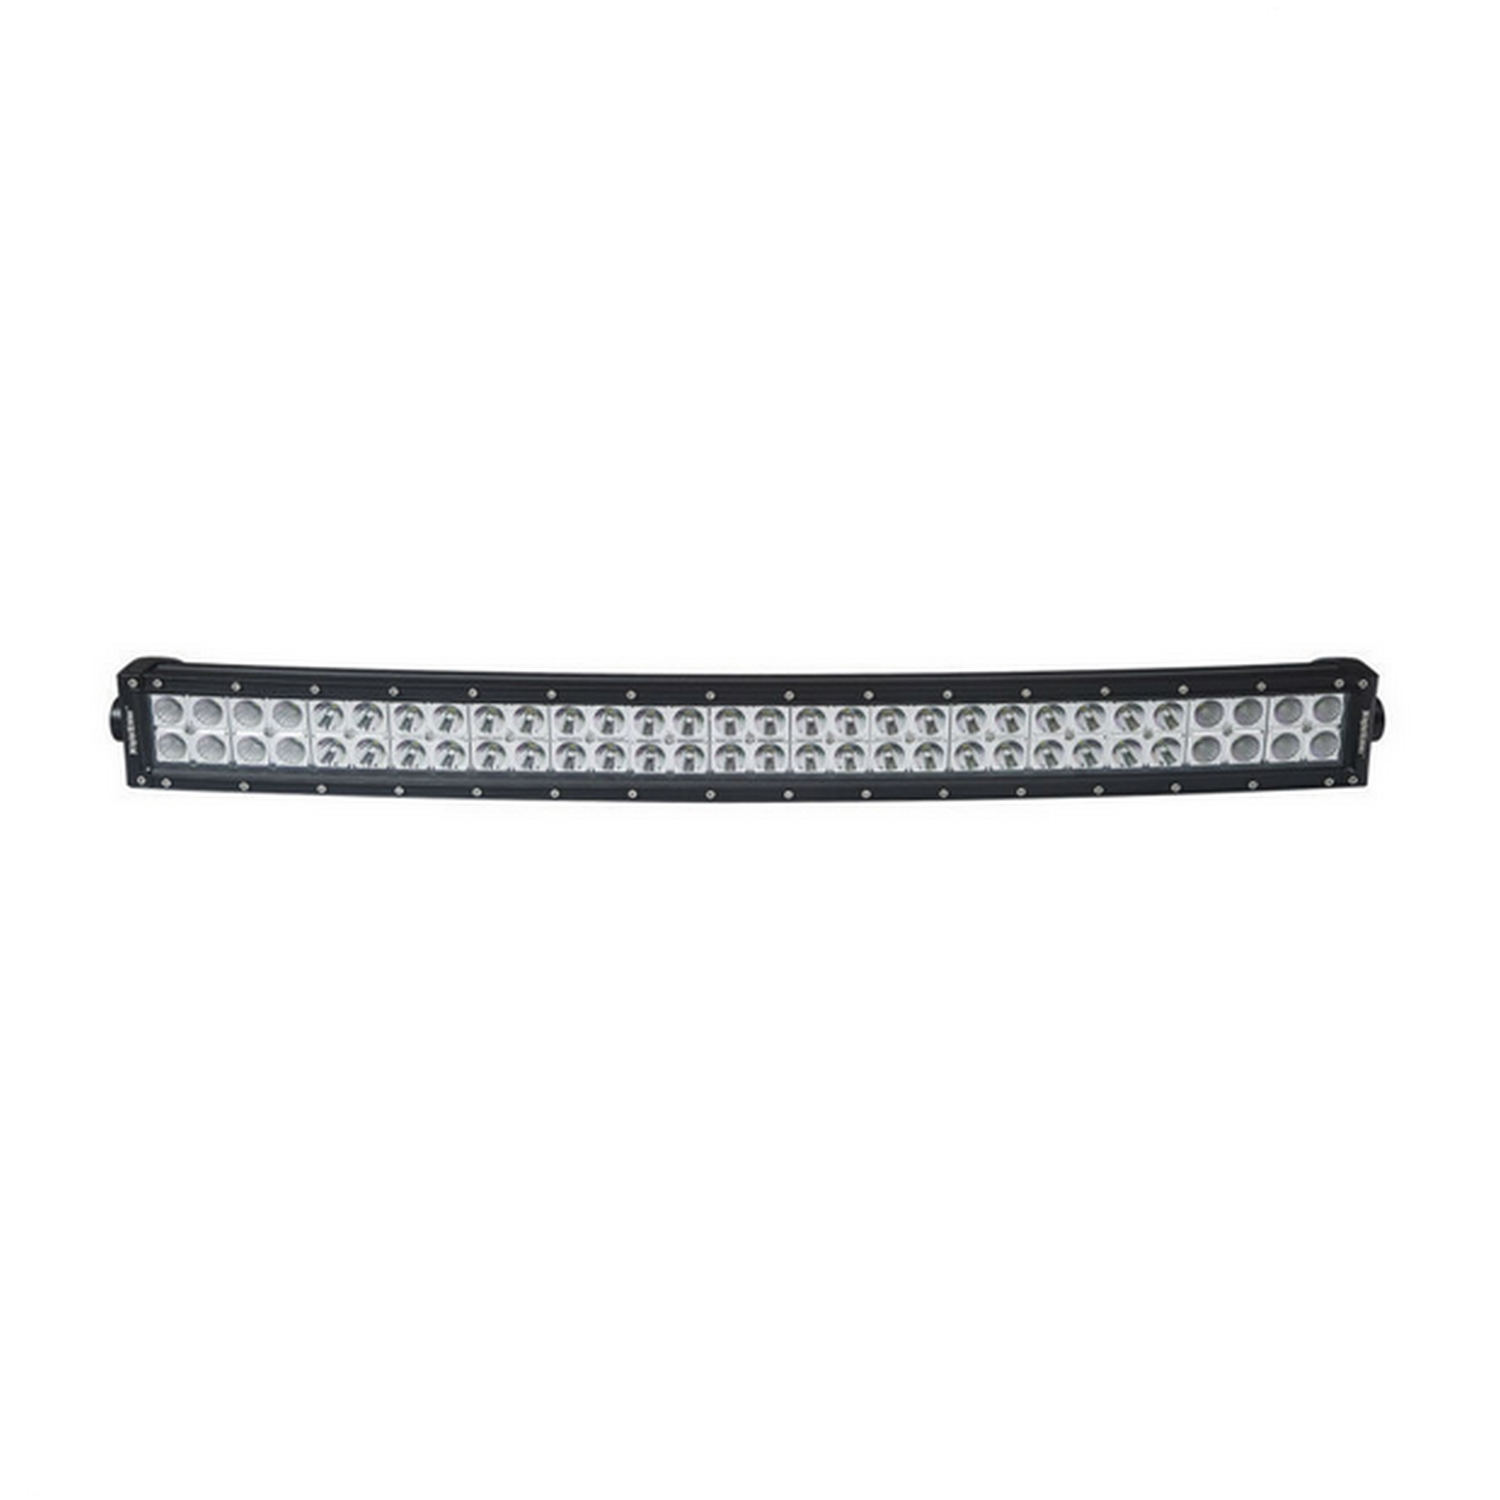 Curved Double Row City Series #72430 LED Light Bar 32″